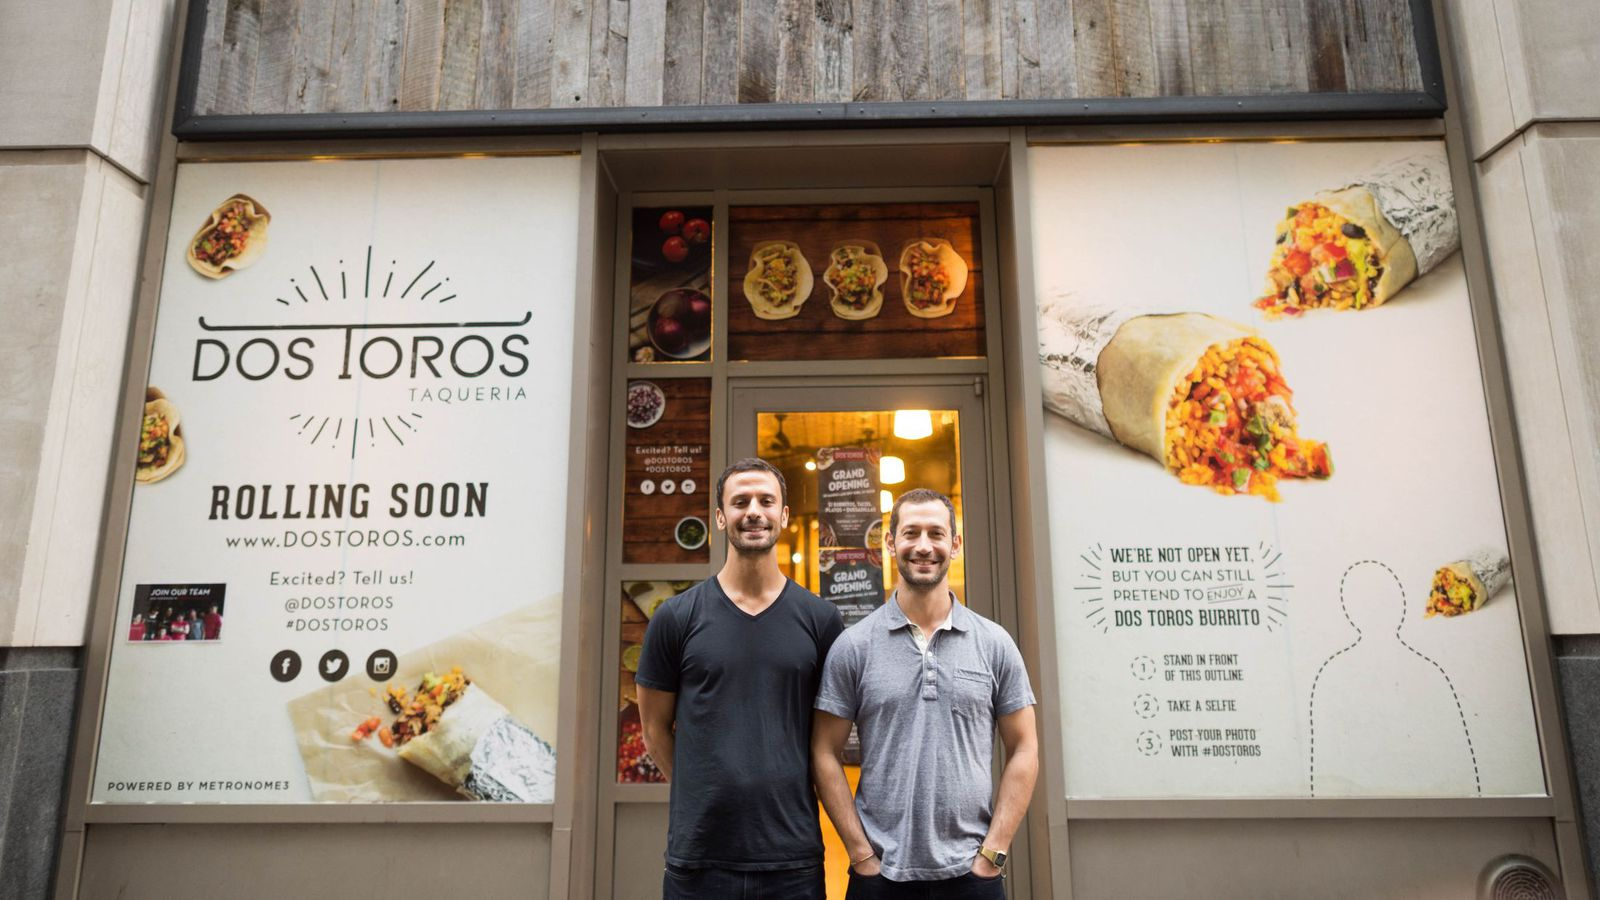 media mentions everyblock chicago ny based dos toros taqueria bringing bay area burritos to chicago